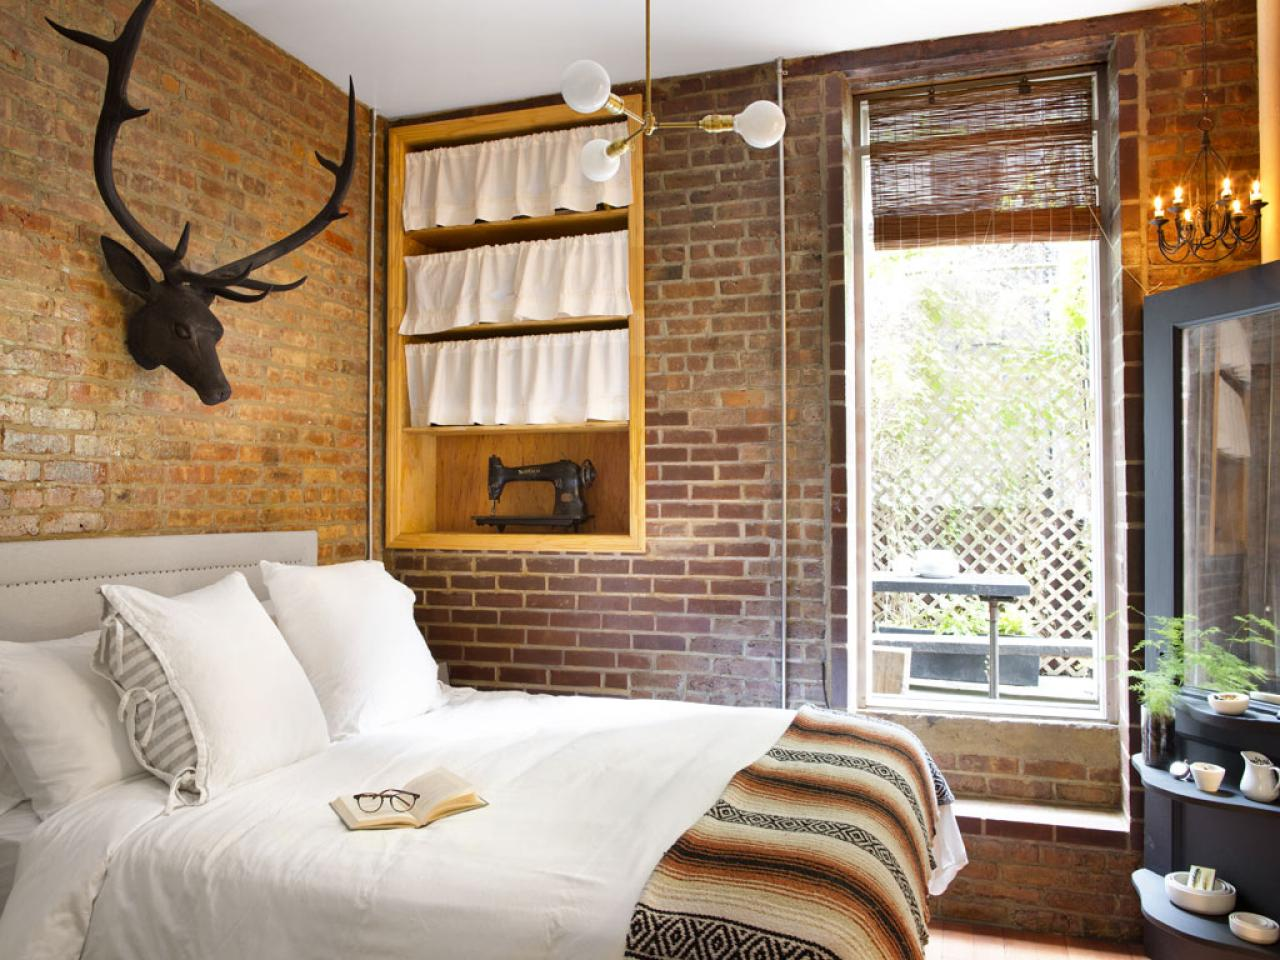 Decor Nyc New York Style In The Interior Bedroom With Exposed Brick And Antique Decor